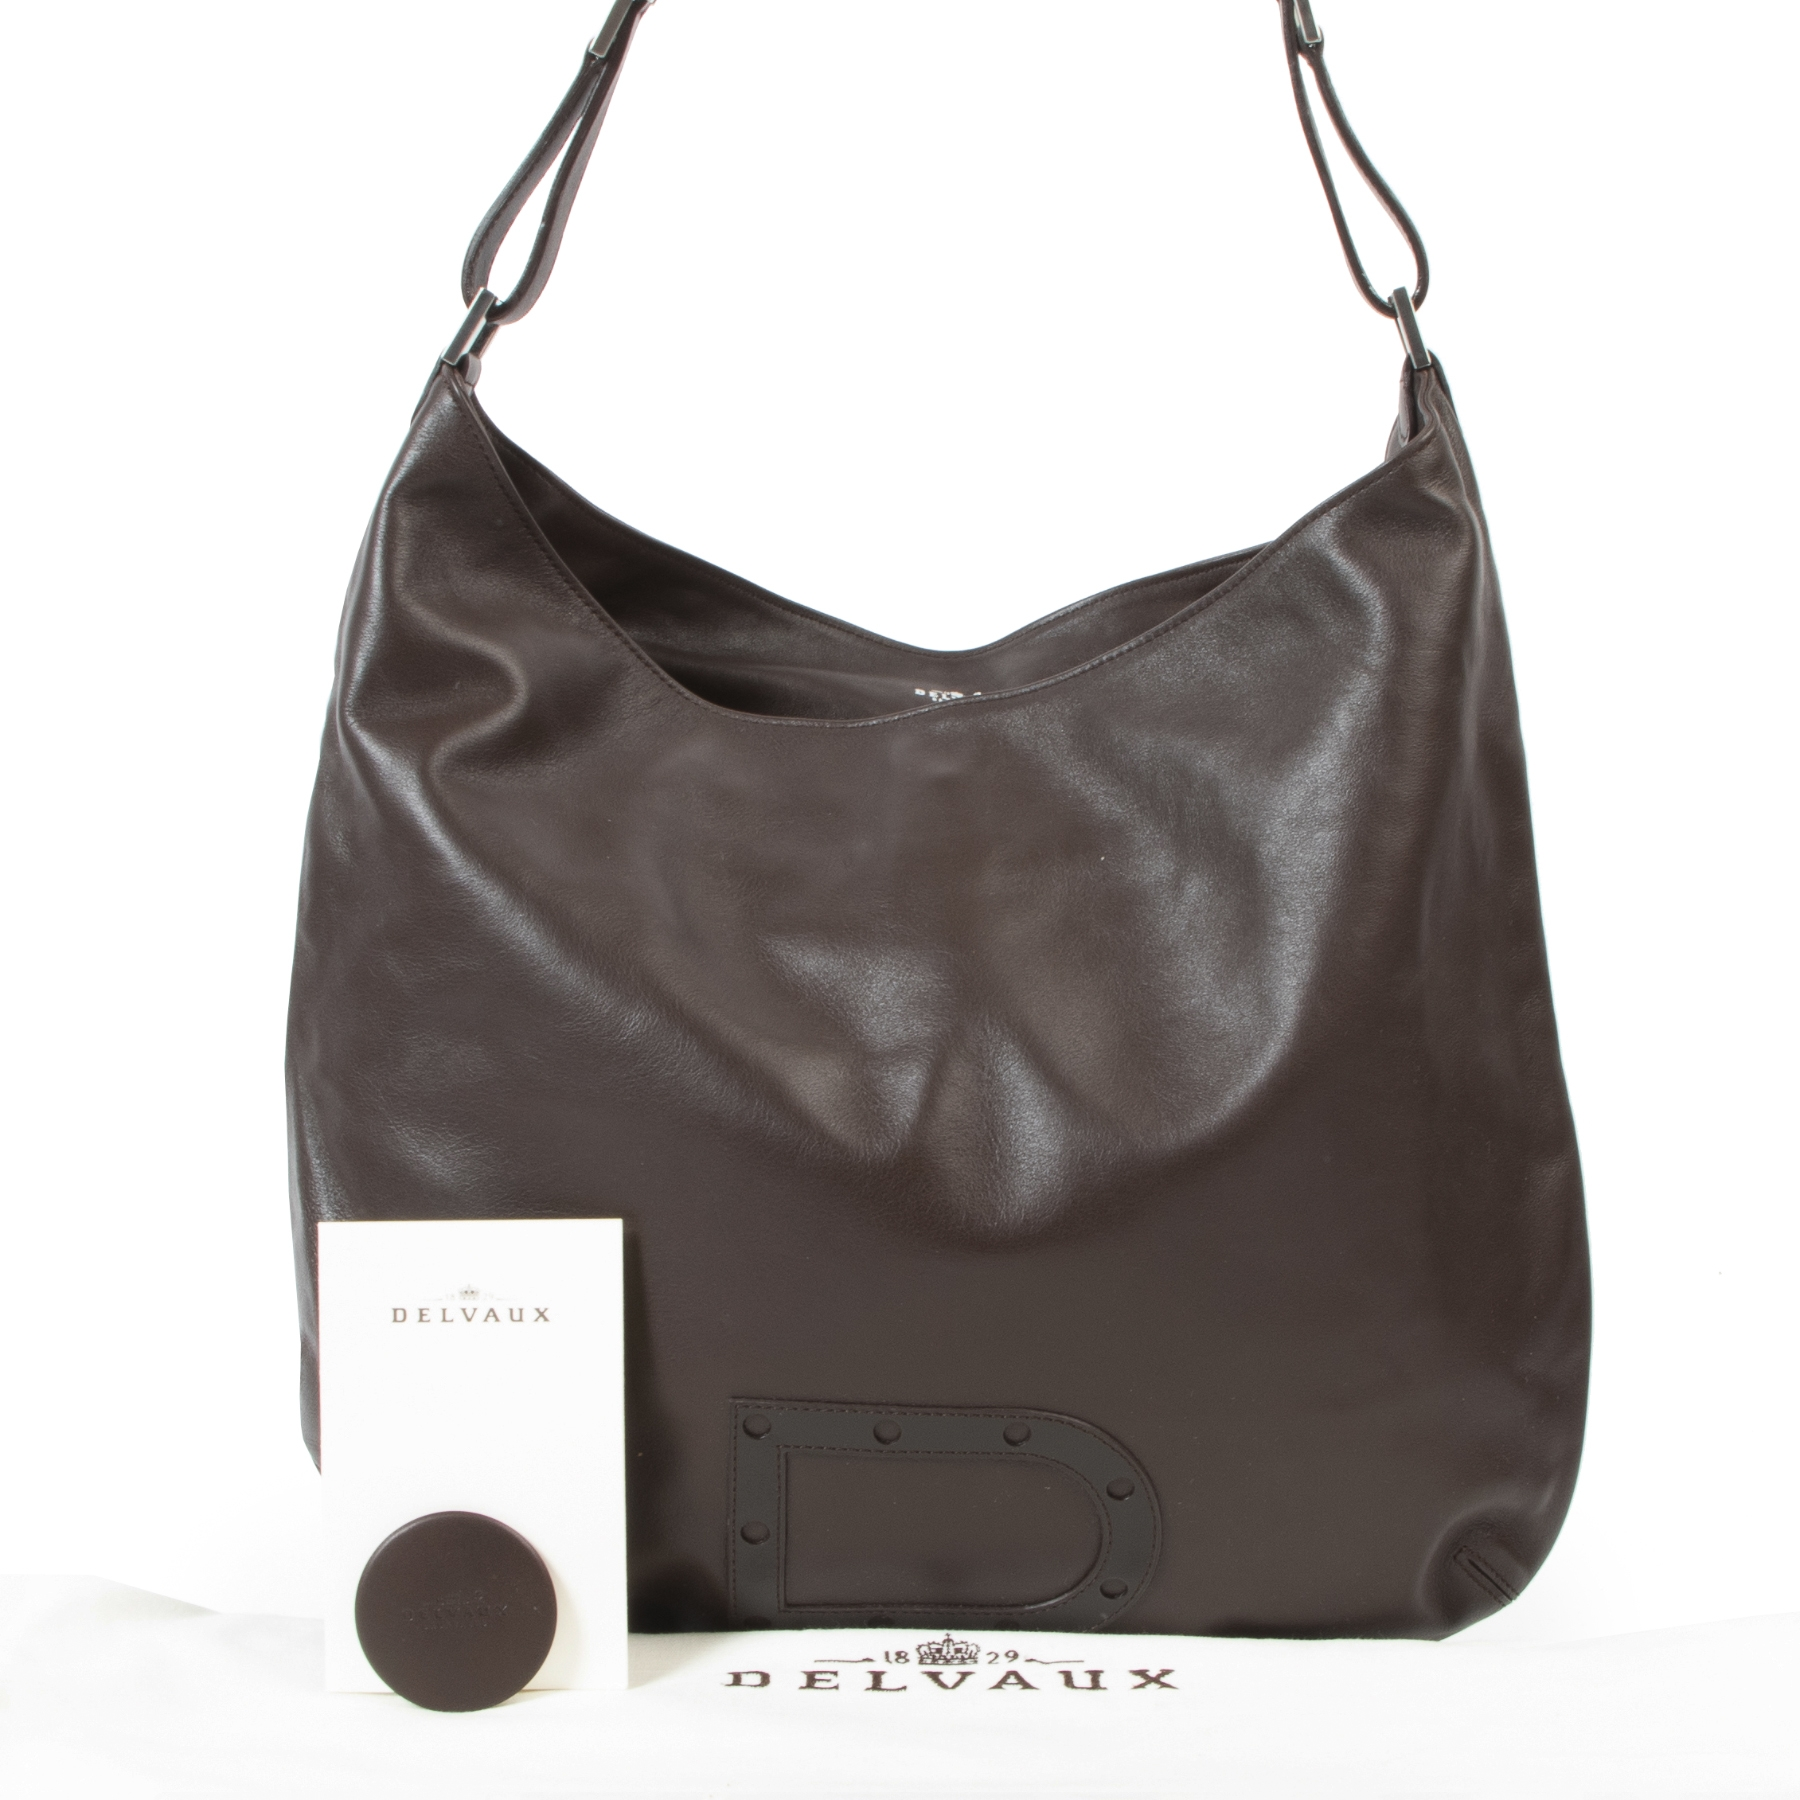 skip th waiting list Delvaux Brown Le Louise GM Hobo Shoulder Bag